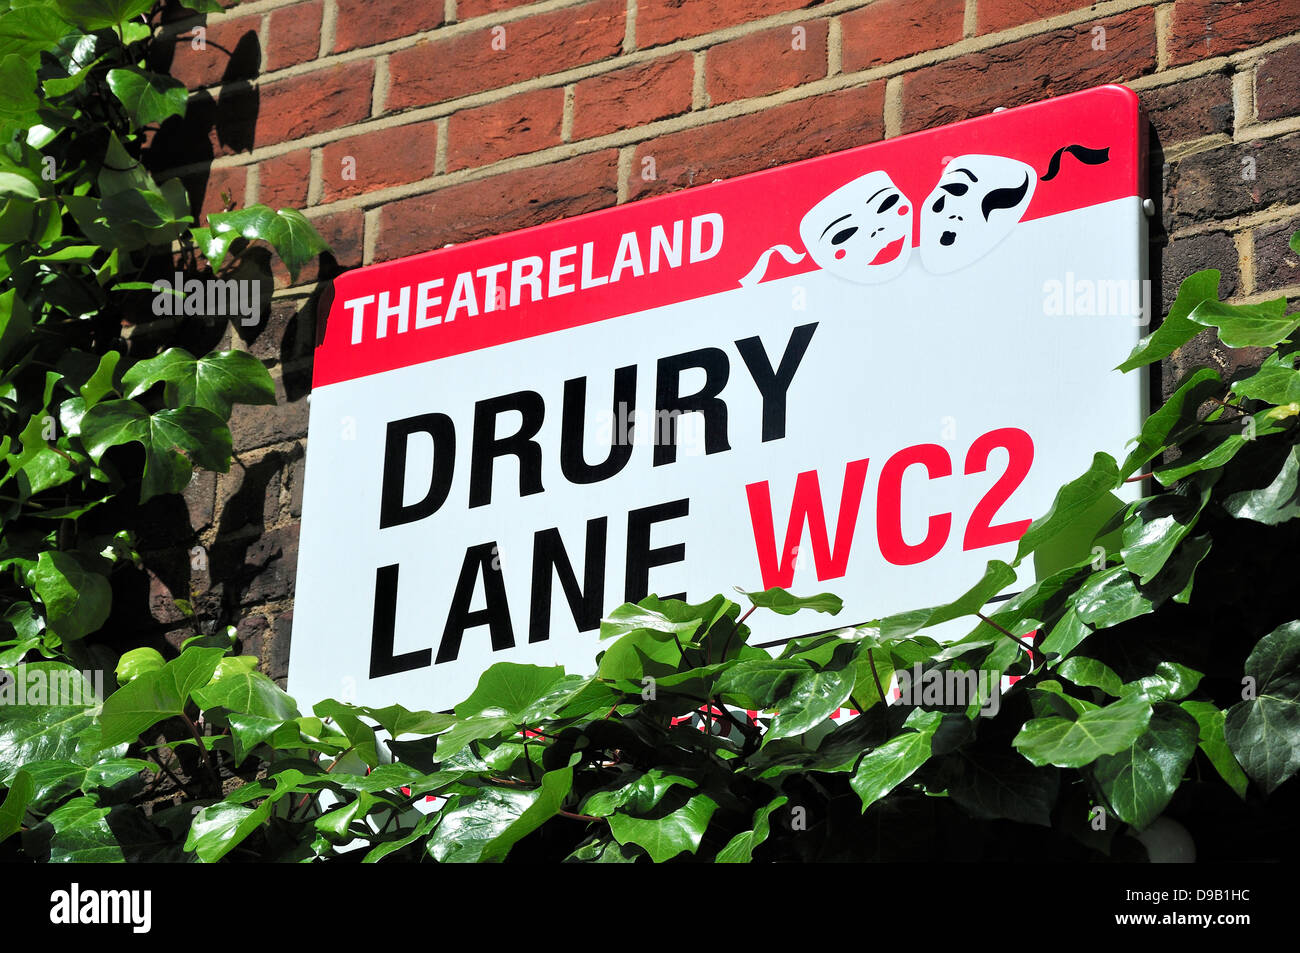 London, England, UK. Drury Lane street sign, Theatreland - Stock Image